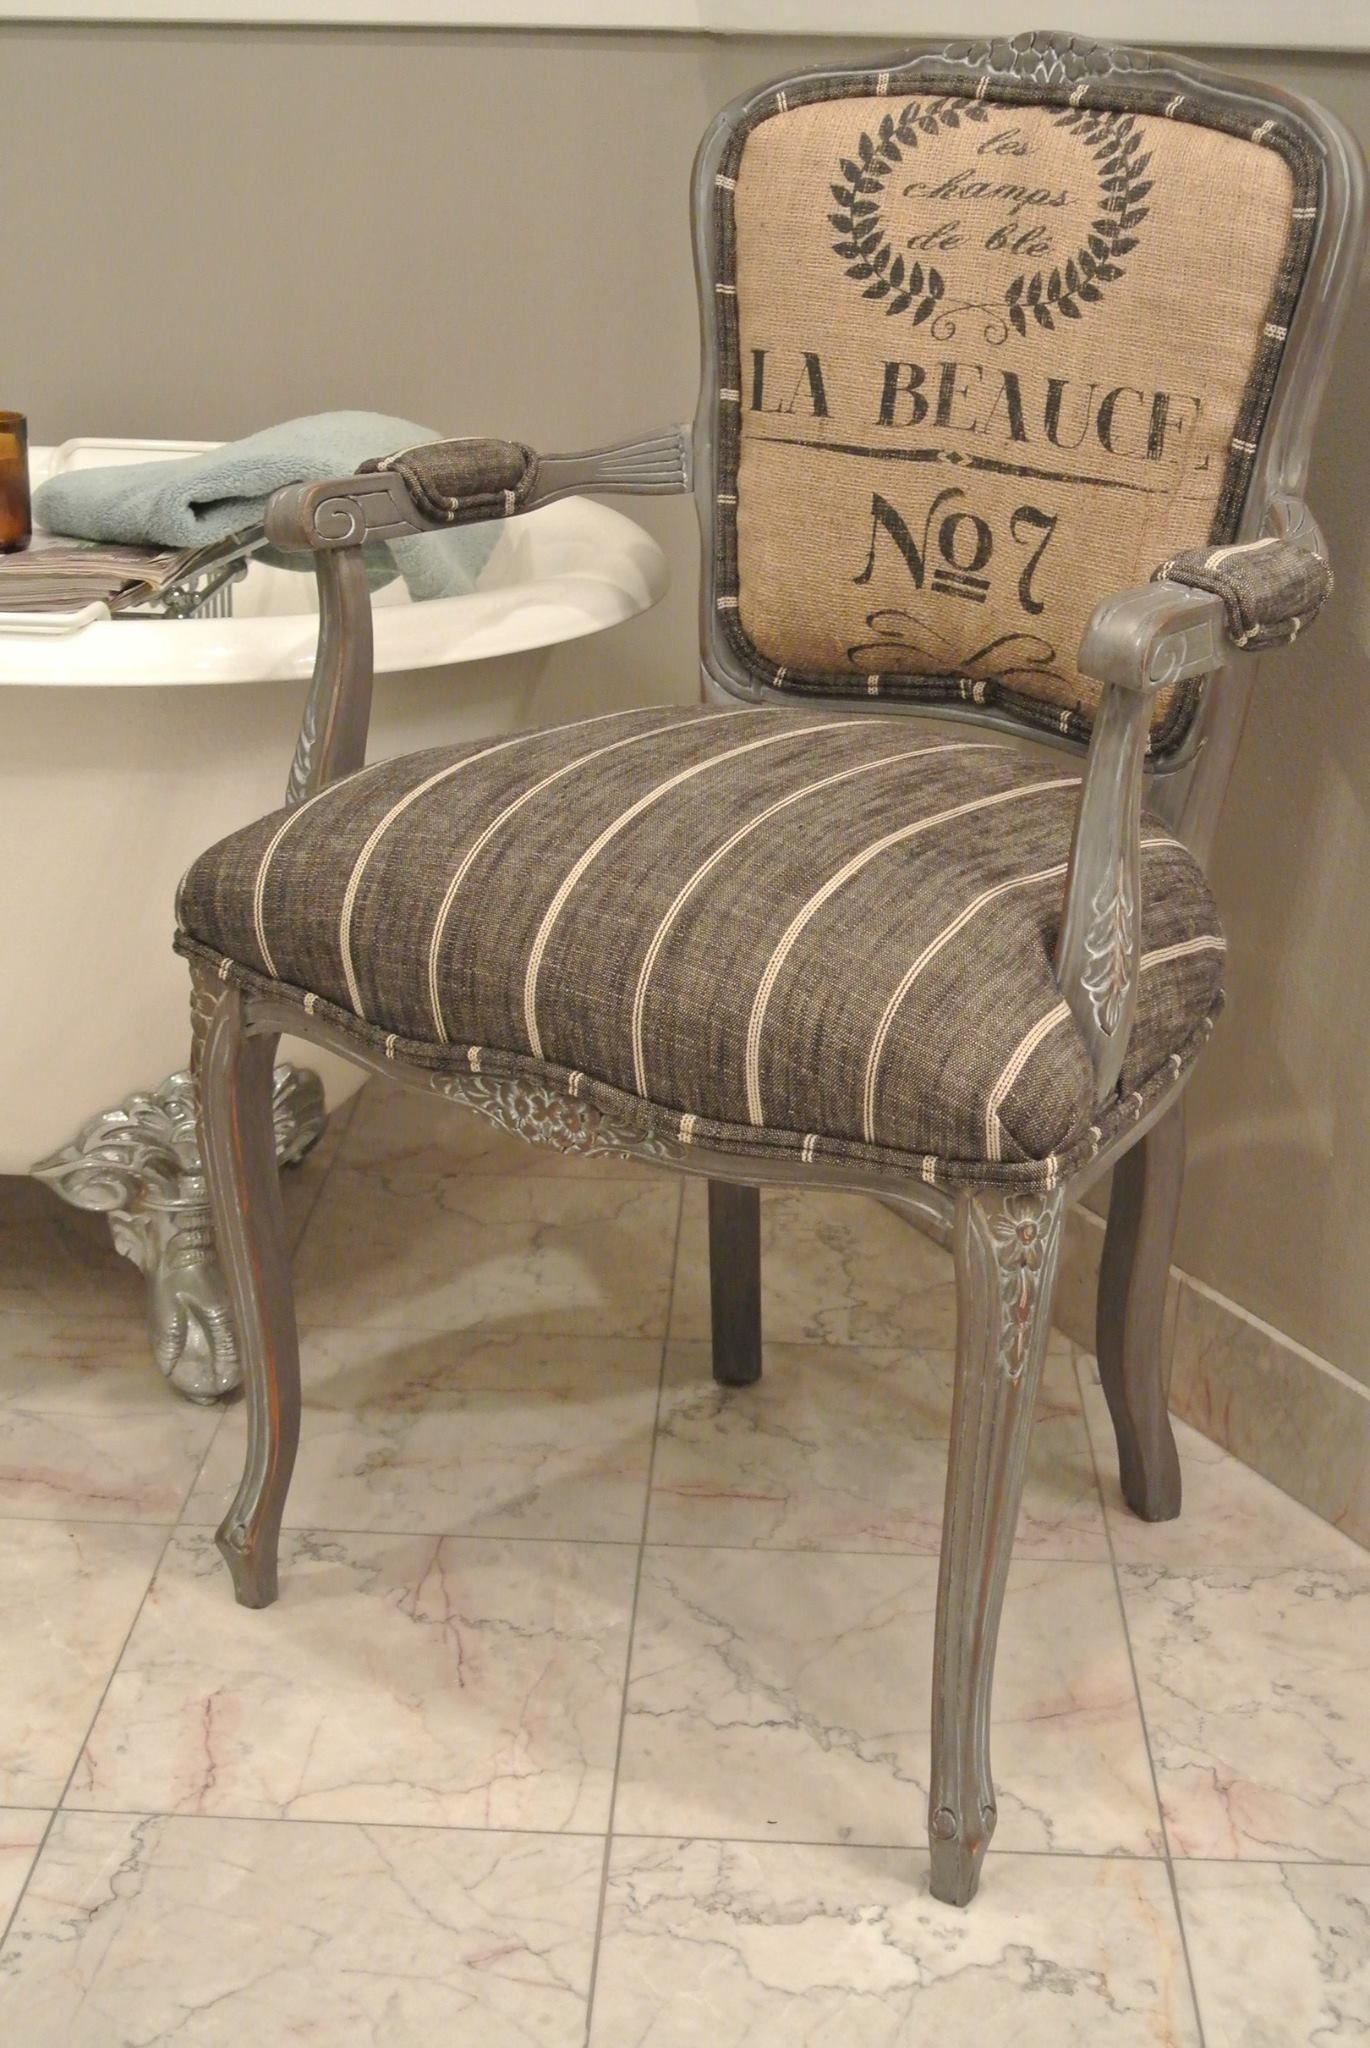 French grain sack chair by Chair Whimsy | furniture | Pinterest ...